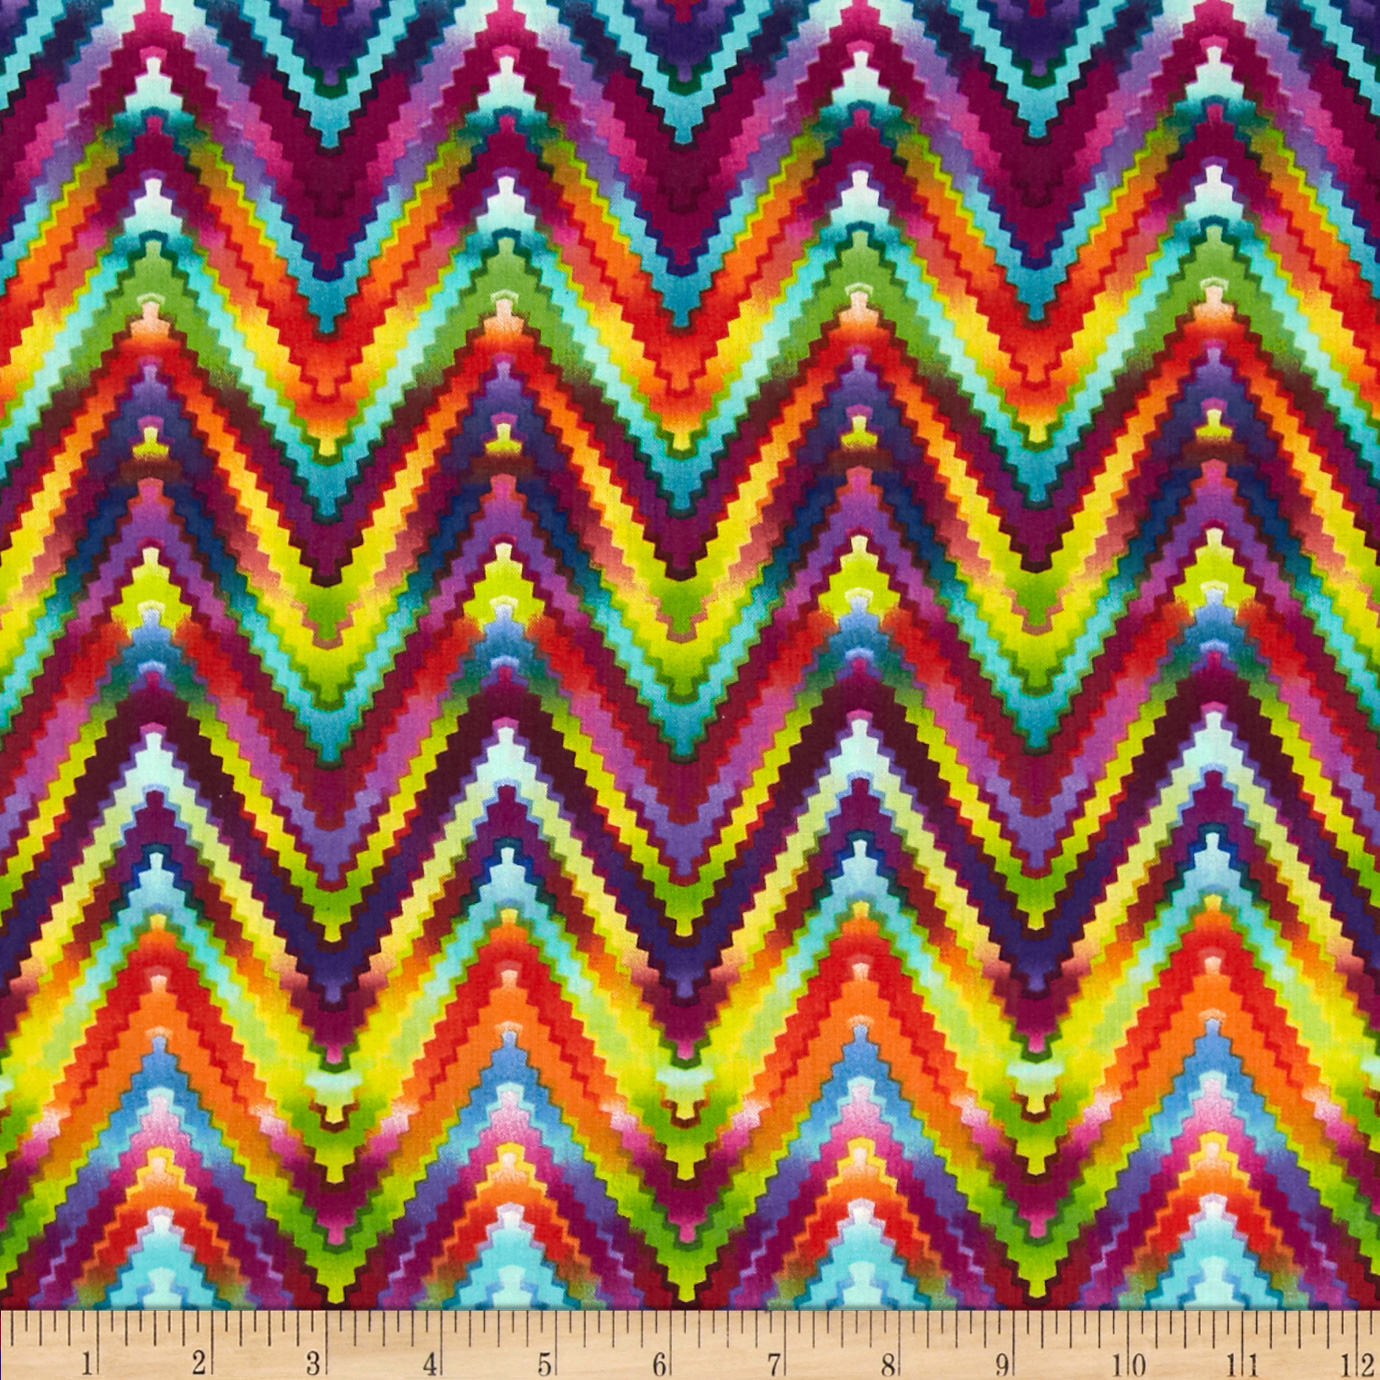 Kanvas Patio Prints Rainbow Ric Rac Multi Fabric